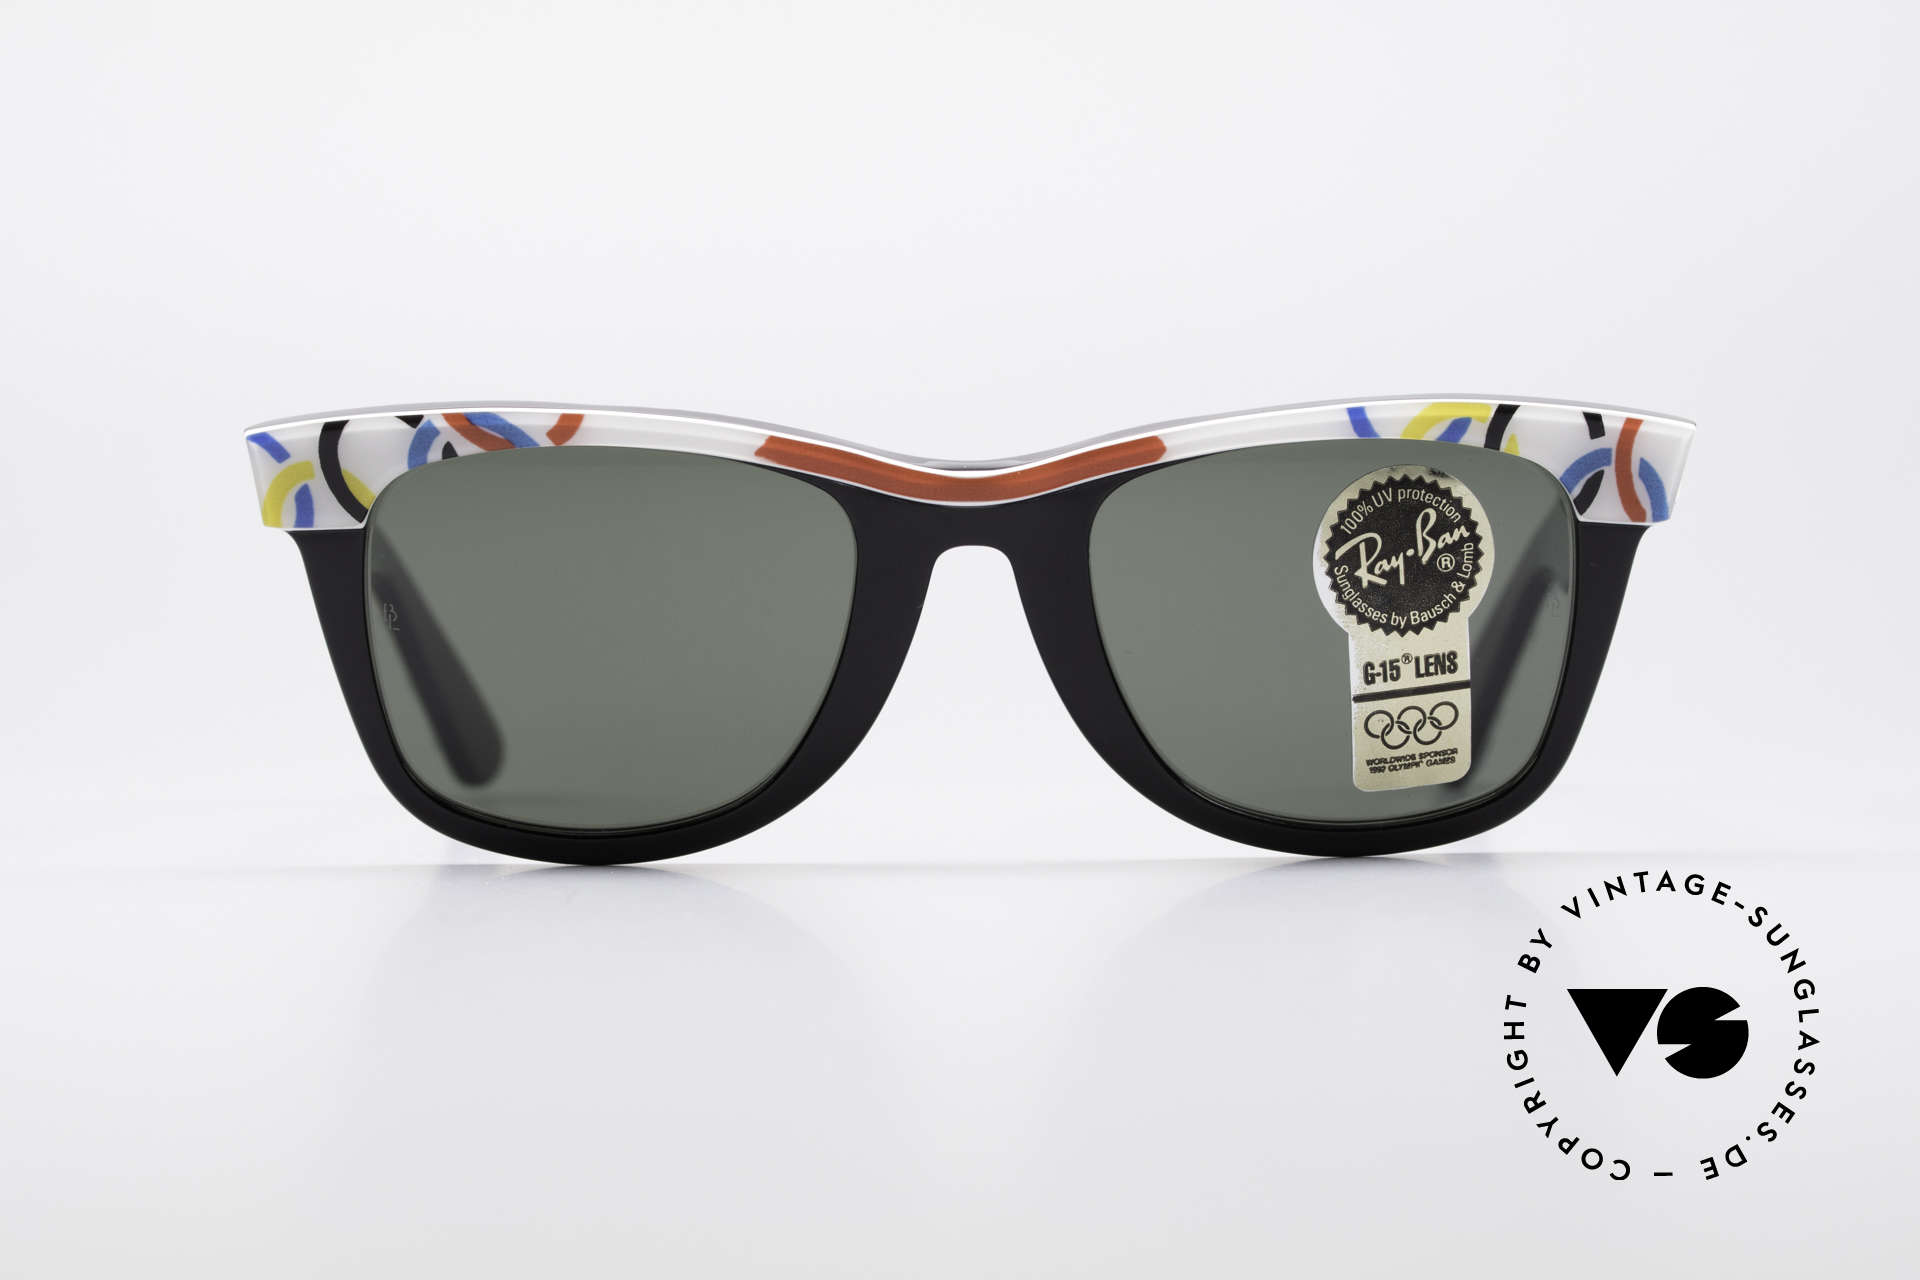 Ray Ban Wayfarer I Olympic Games St. Moritz, rare Olympia Series - sports edition 'St. Moritz 1928', Made for Men and Women